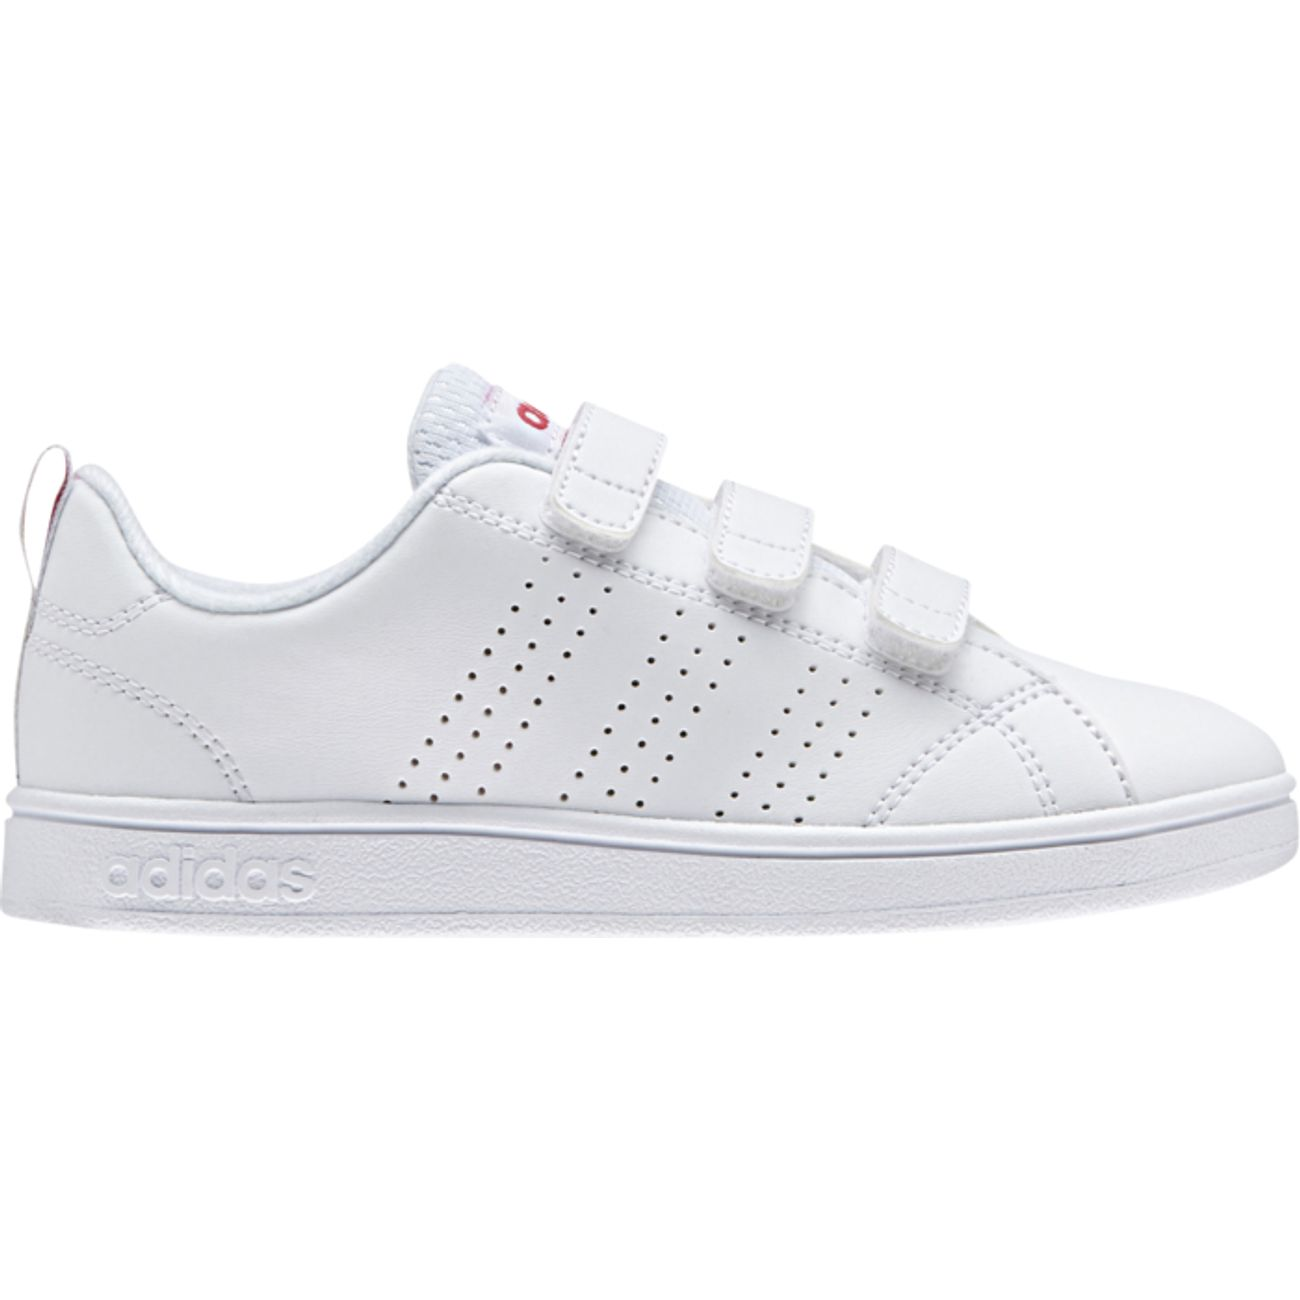 CHAUSSURES BASSES  enfant ADIDAS VS ADVANTAGE CLEAN VLC